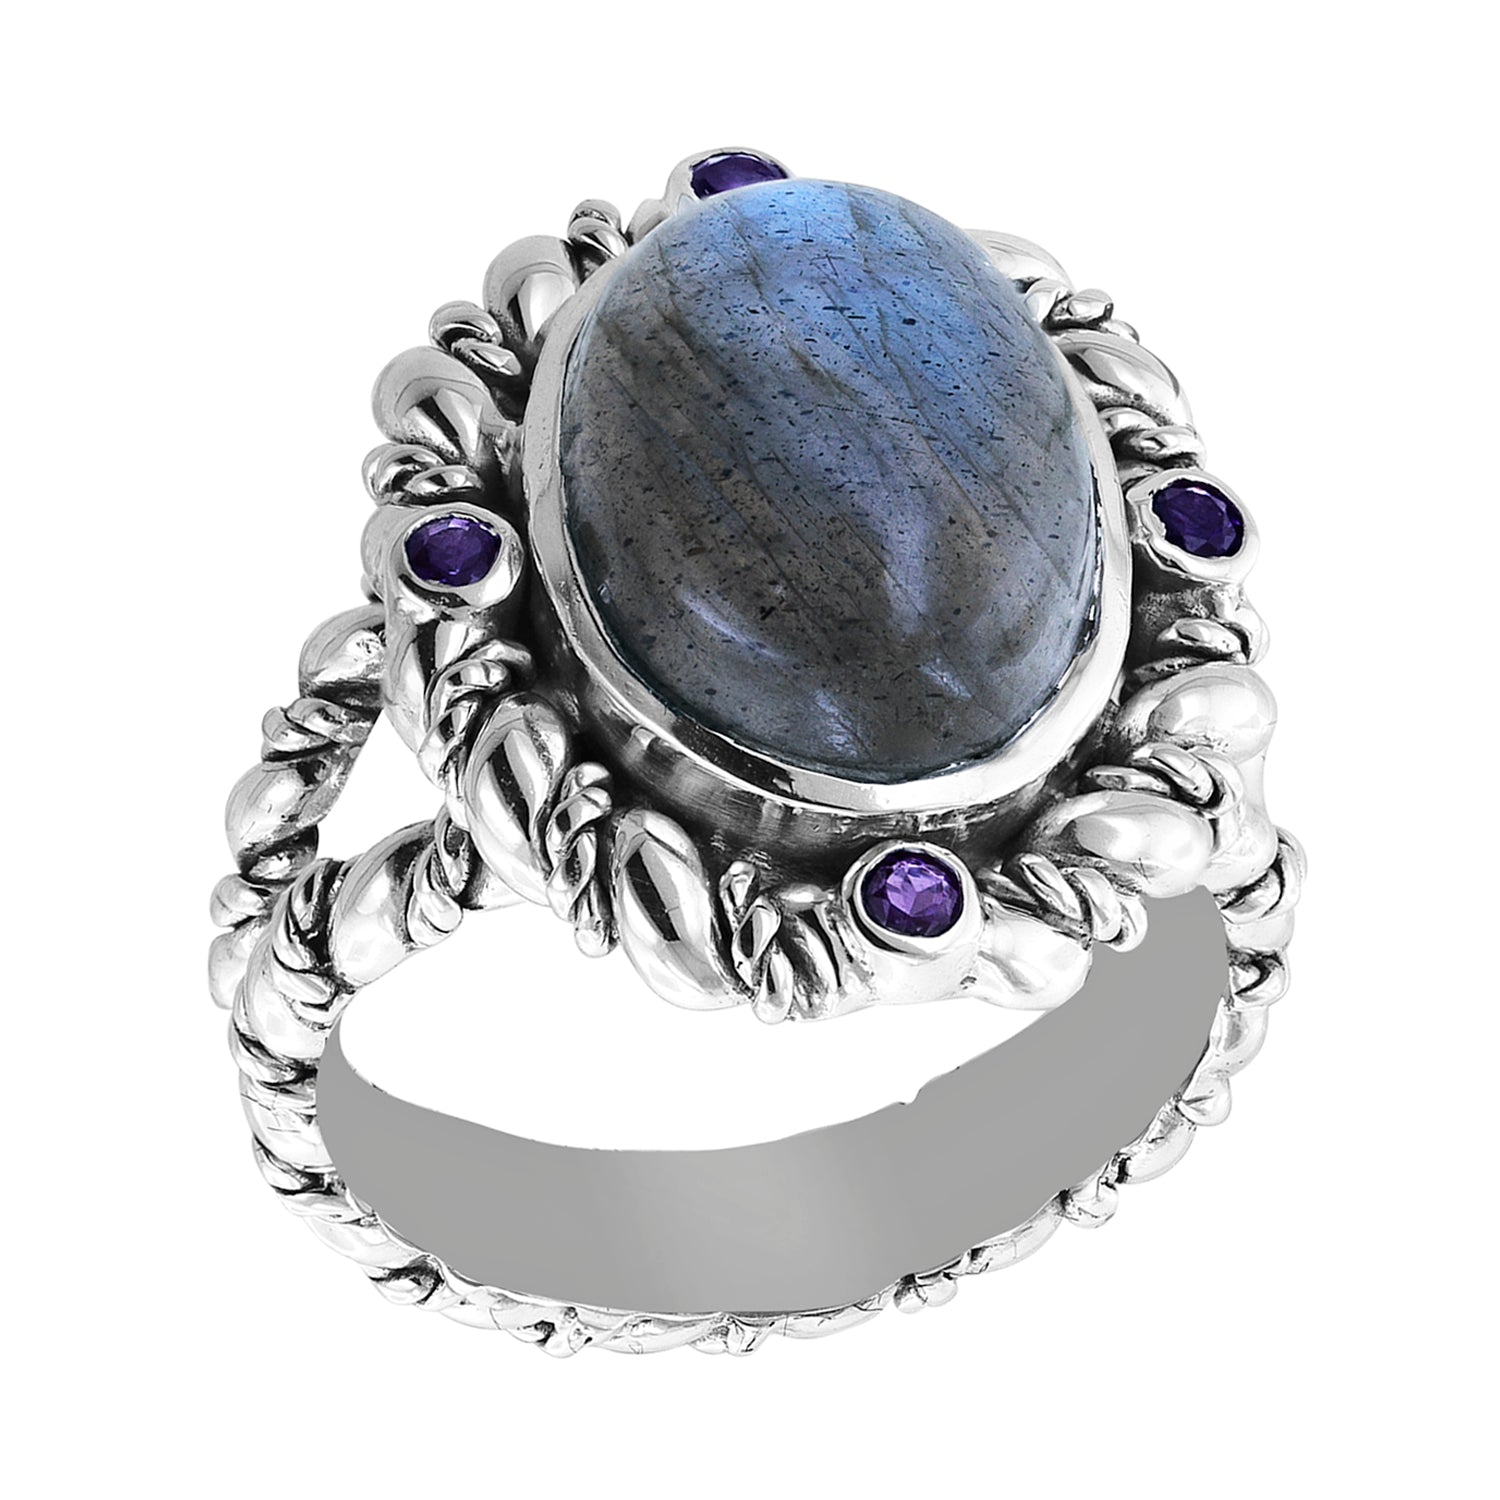 Sterling Silver Bali Labradorite Ring with Double Cable Pattern and African Amethyst Accents